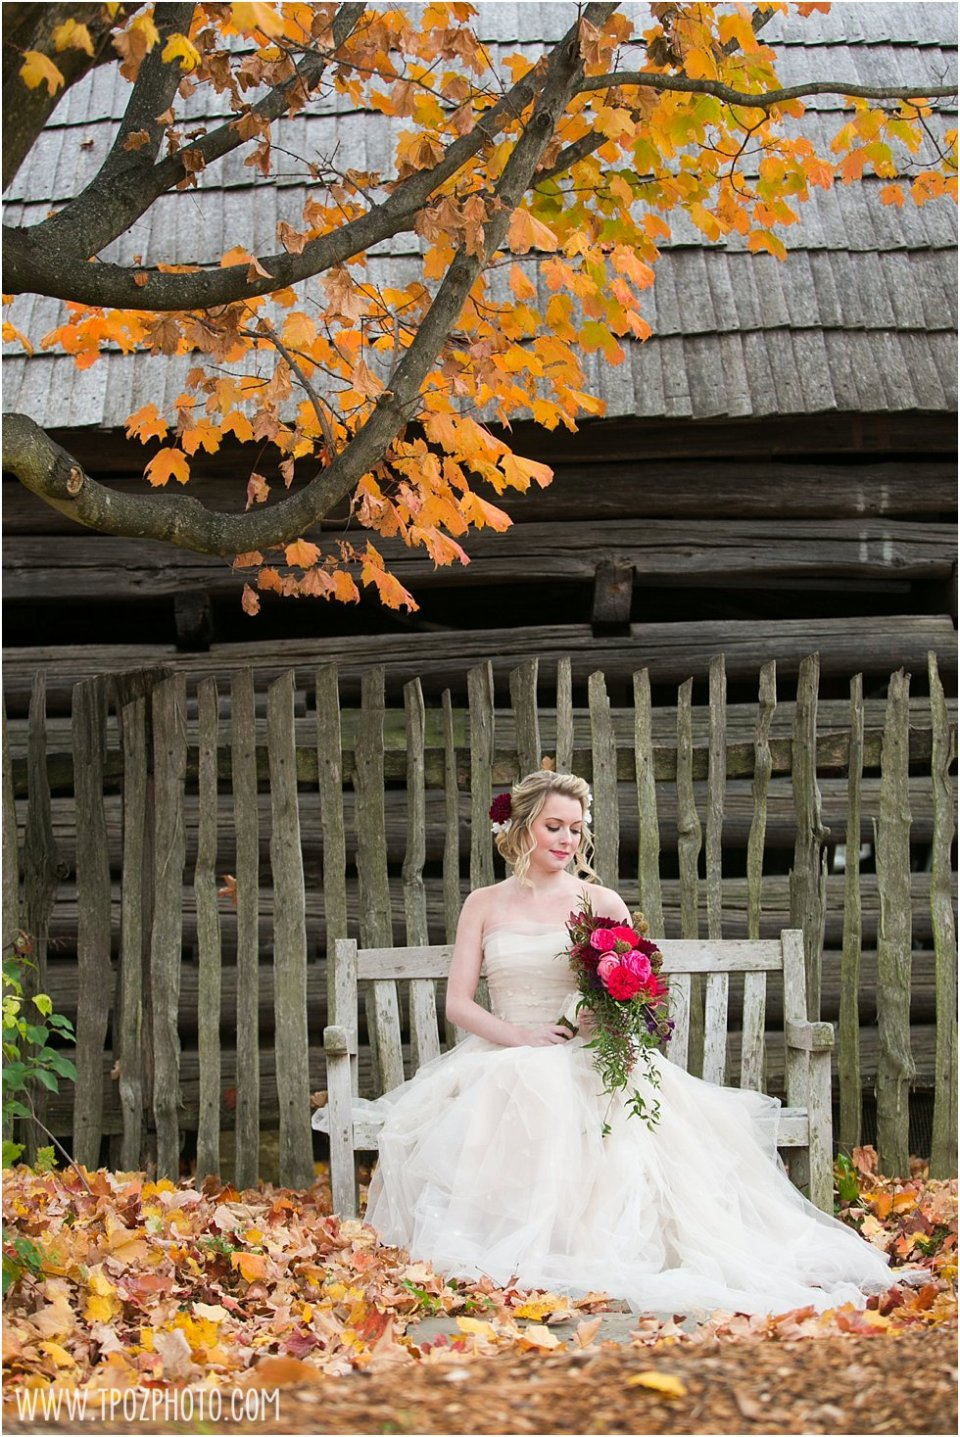 Historic London Town Wedding PhotoShoot, Annapolis  •  tPoz Photography  •  www.tpozphoto.com